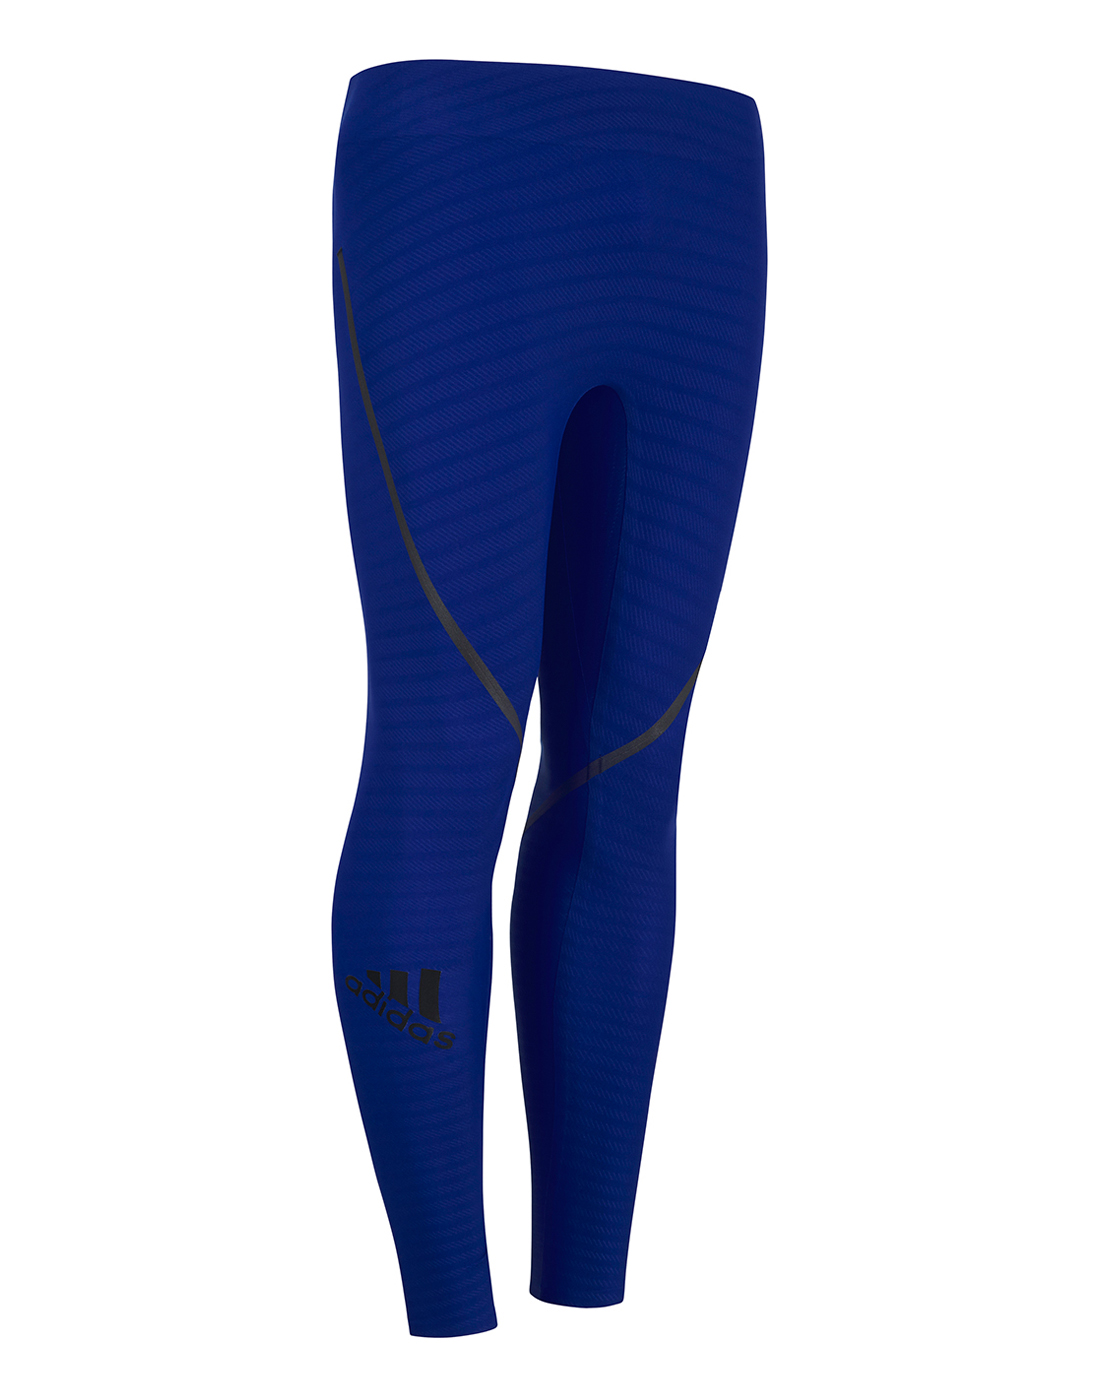 05d3c18e73a91 adidas Mens Alphaskin 360 Tight | Life Style Sports